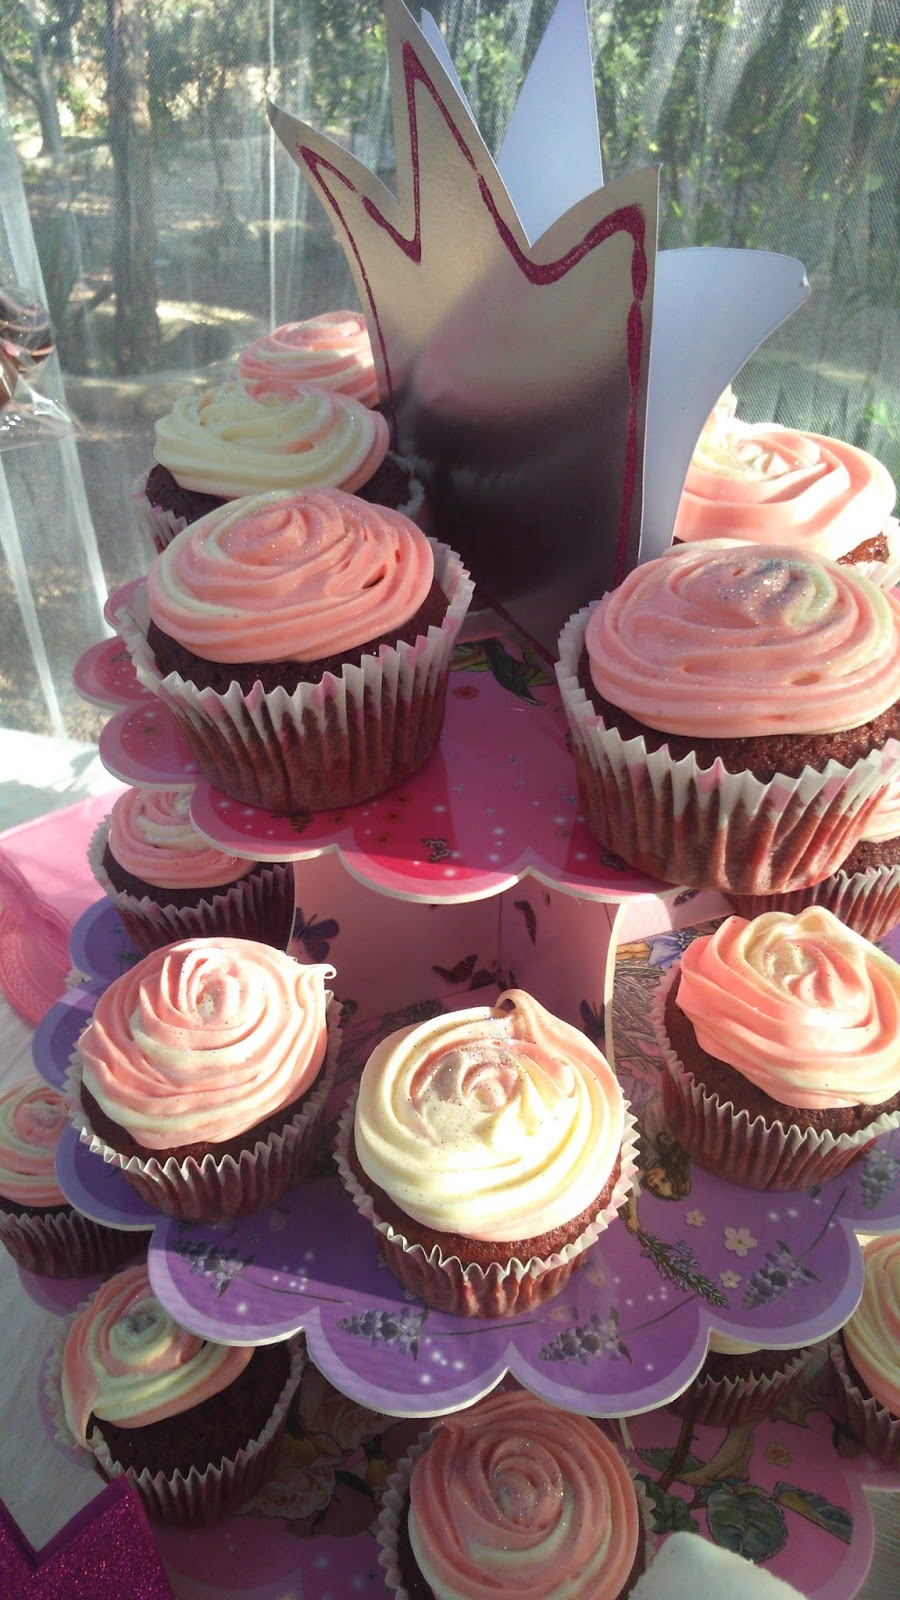 red velvet, cup cakes, rosa, princesas